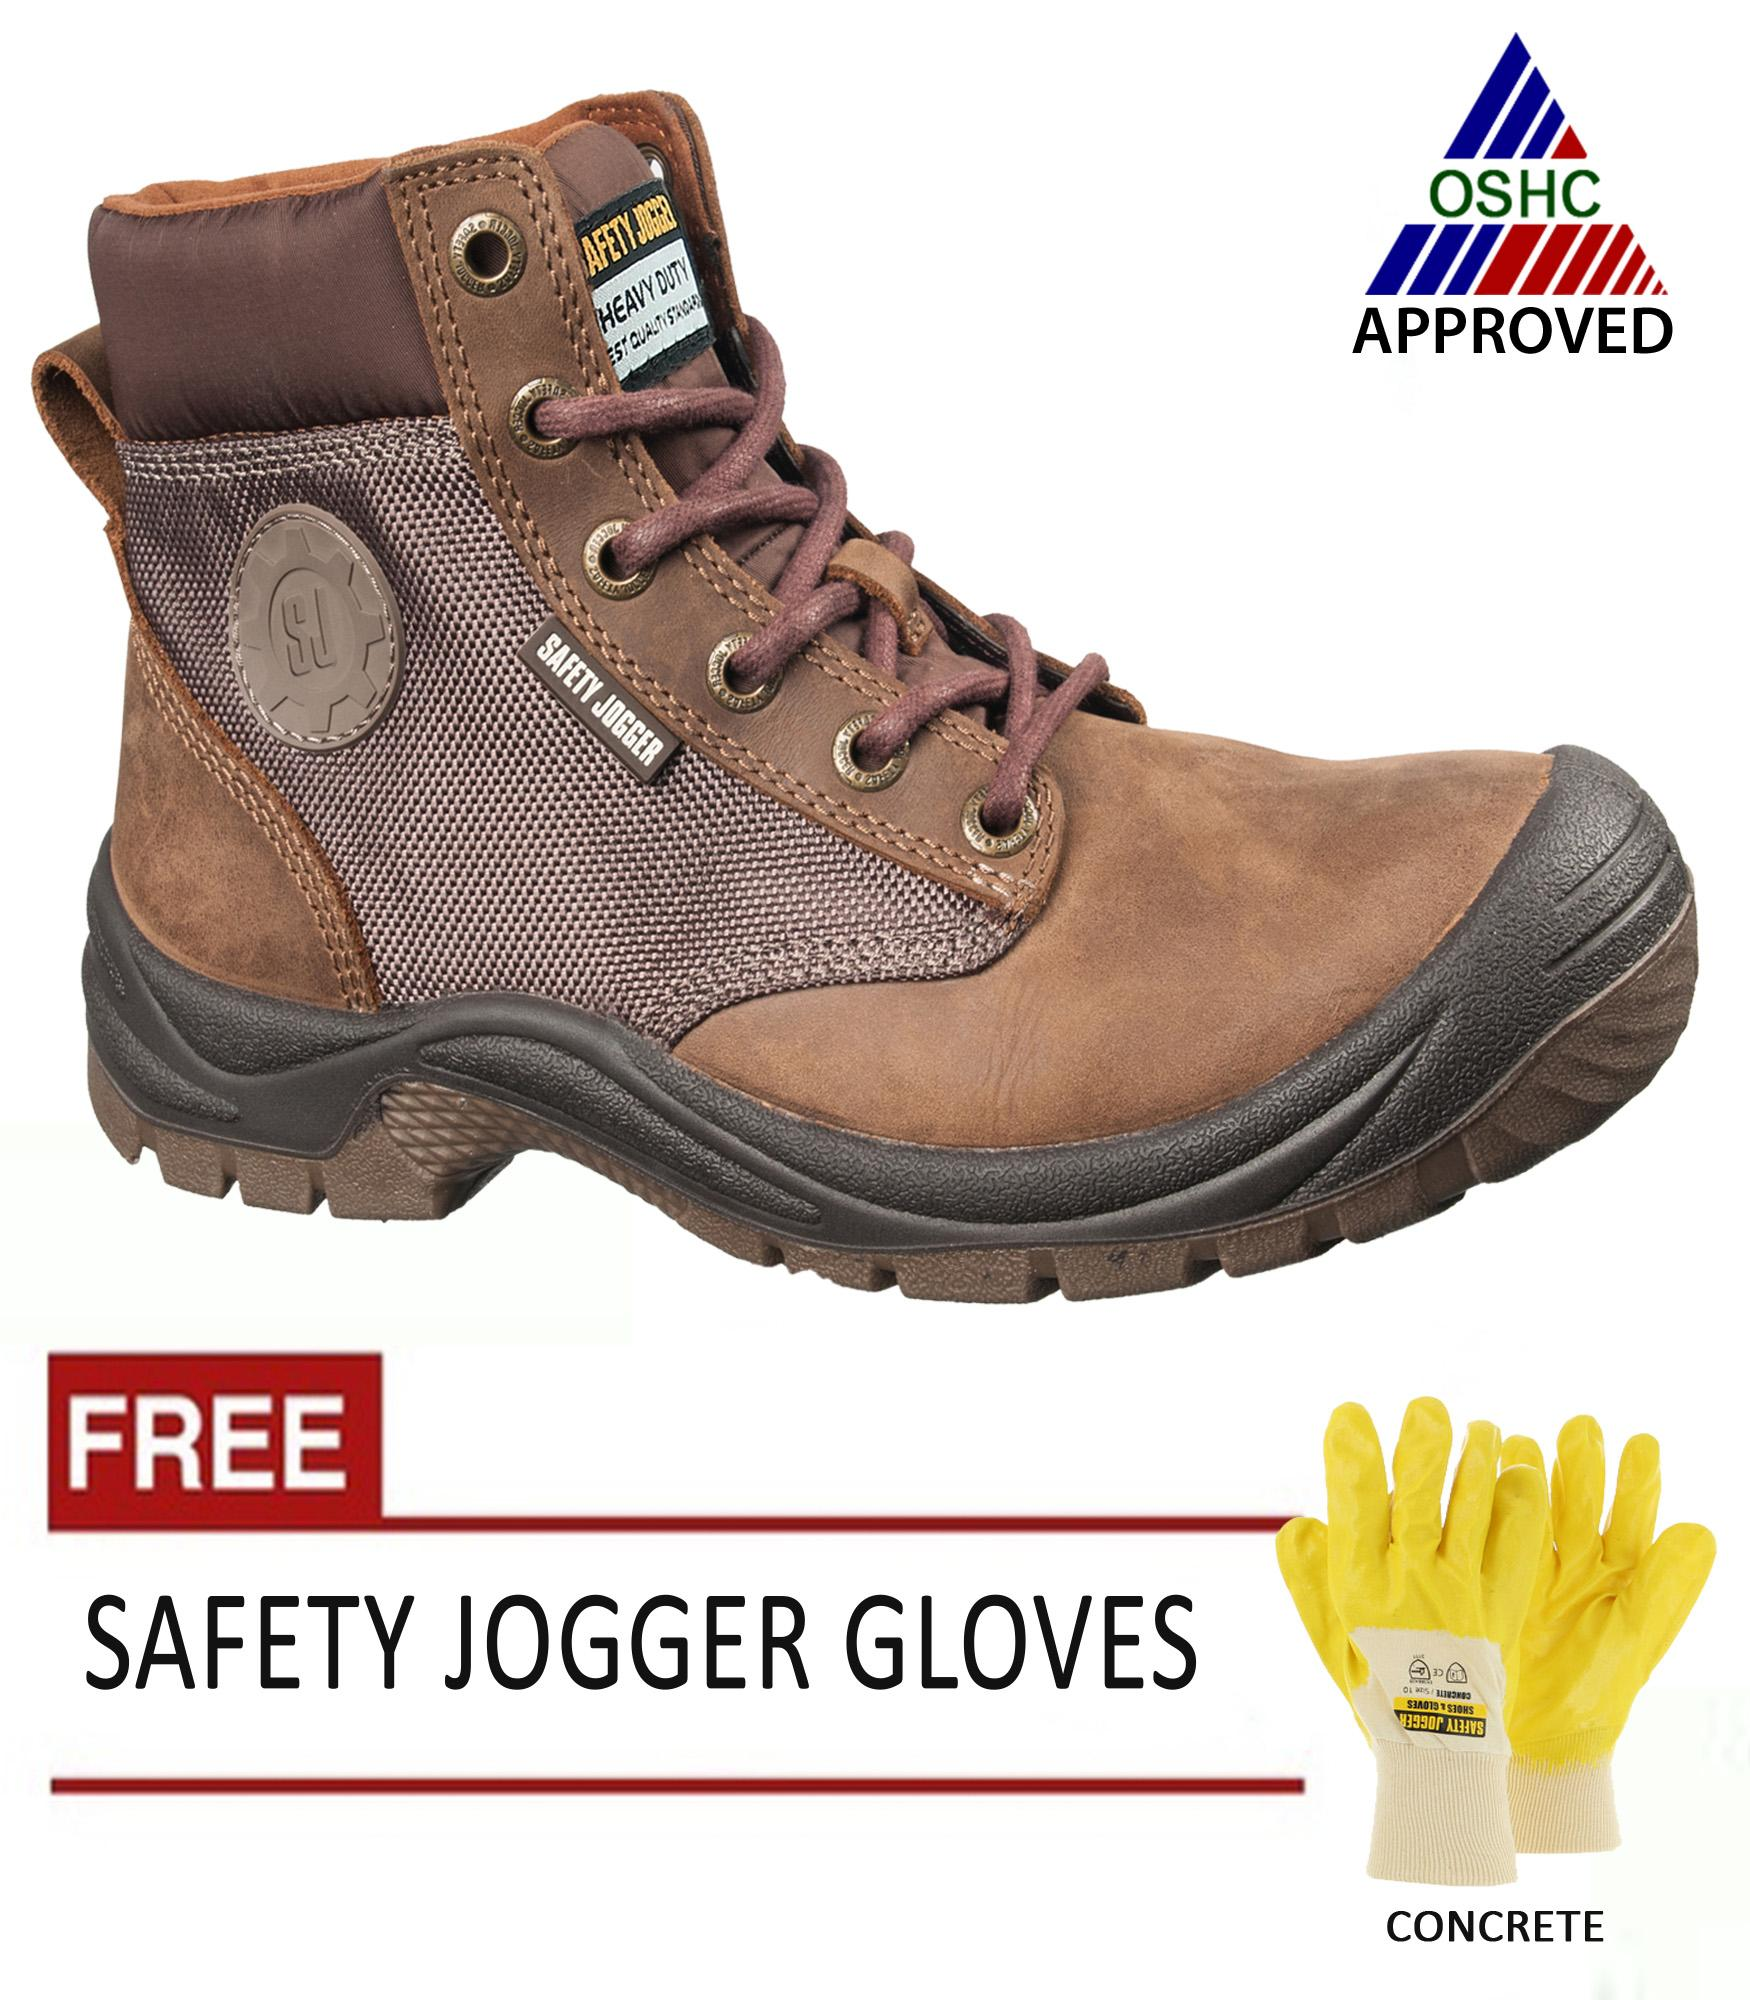 Safety Jogger Dakar Brown S3 High Cut Safety Shoes For Men Safety Footwear Steel Toe Brown With Free Safety Jogger Gloves Concrete